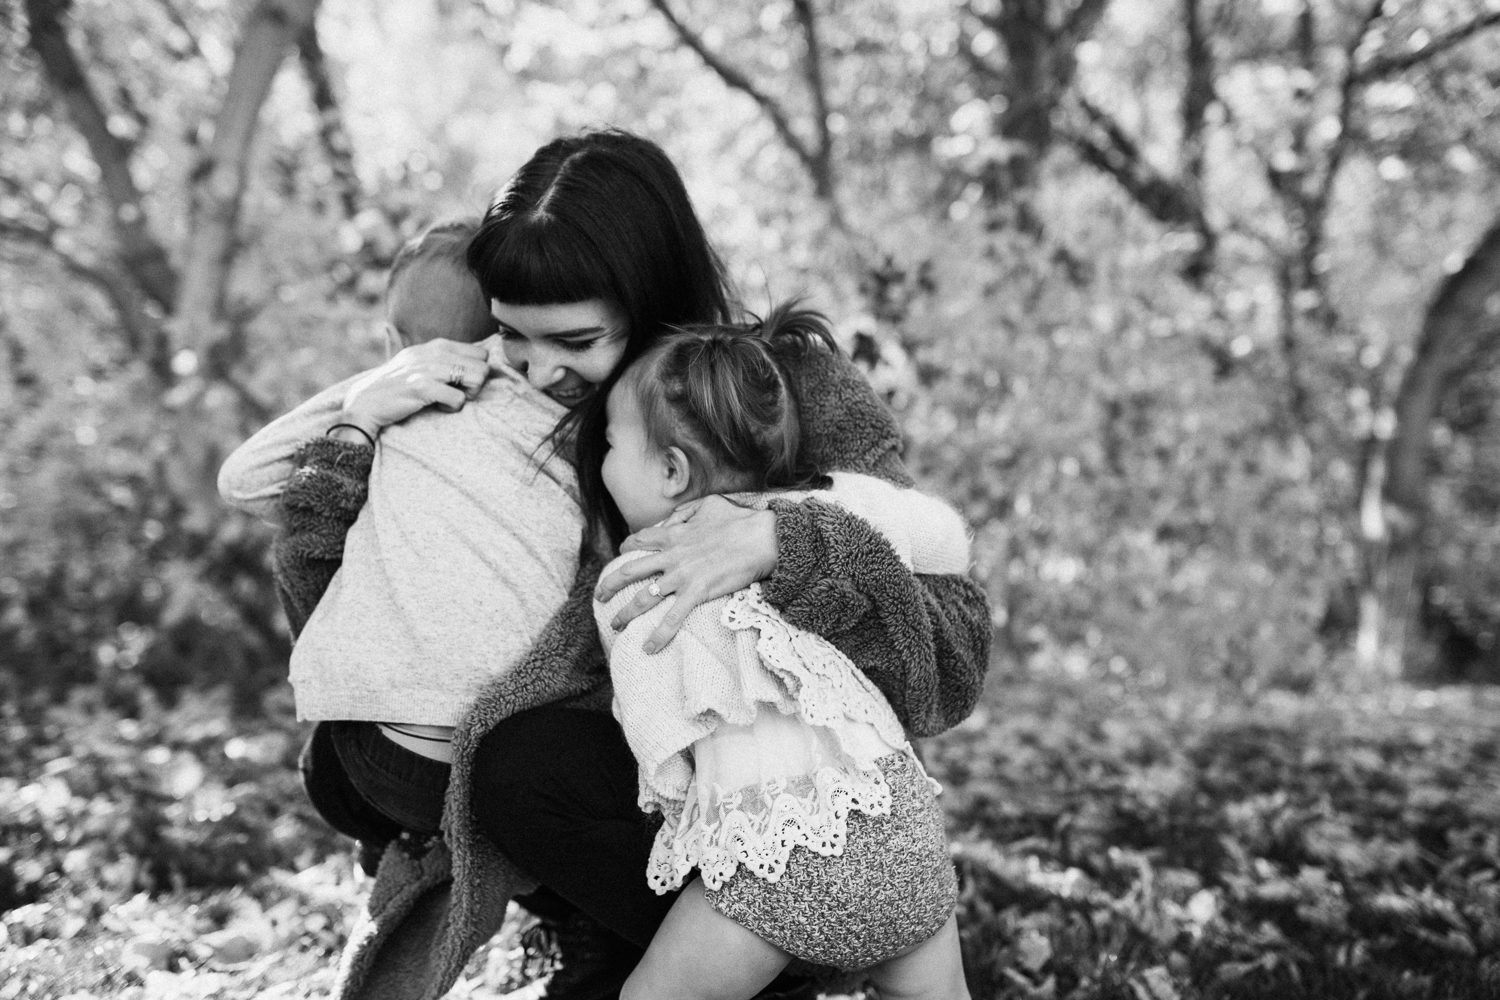 candid-black-and-white-of-children-hugging-mother-at-park-during-free-family-mini-session-with-jen-fairchild-photography-in-salt-lake-city-utah